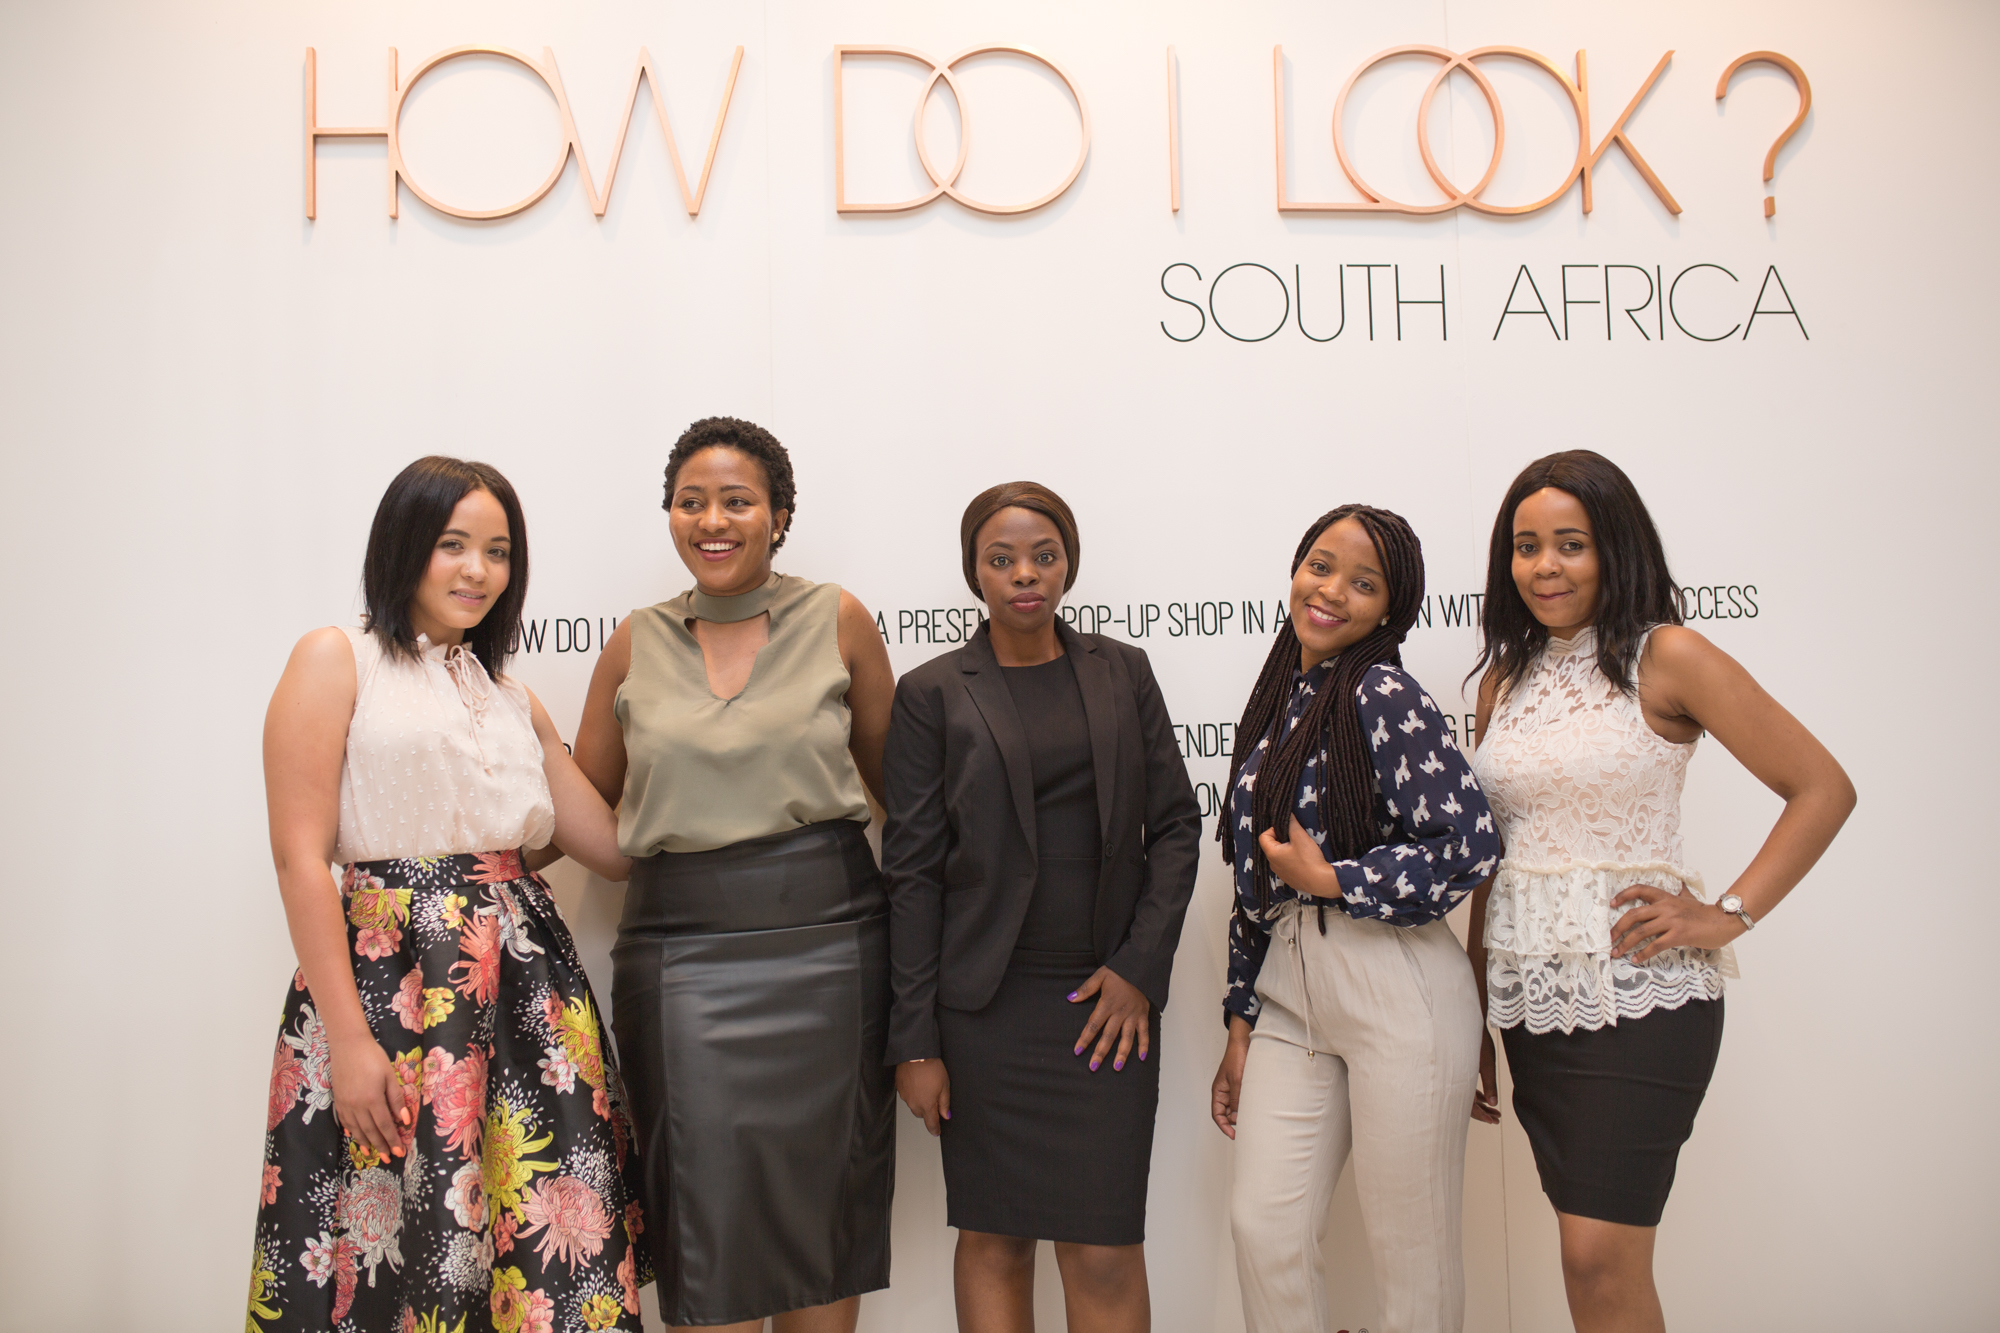 Dress For Success ladies after pic_HOW DO I LOOK SOUTH AFRIC - E! Entertainment Television (IMAGE CREDIT E! Entertainment Television) - Copy